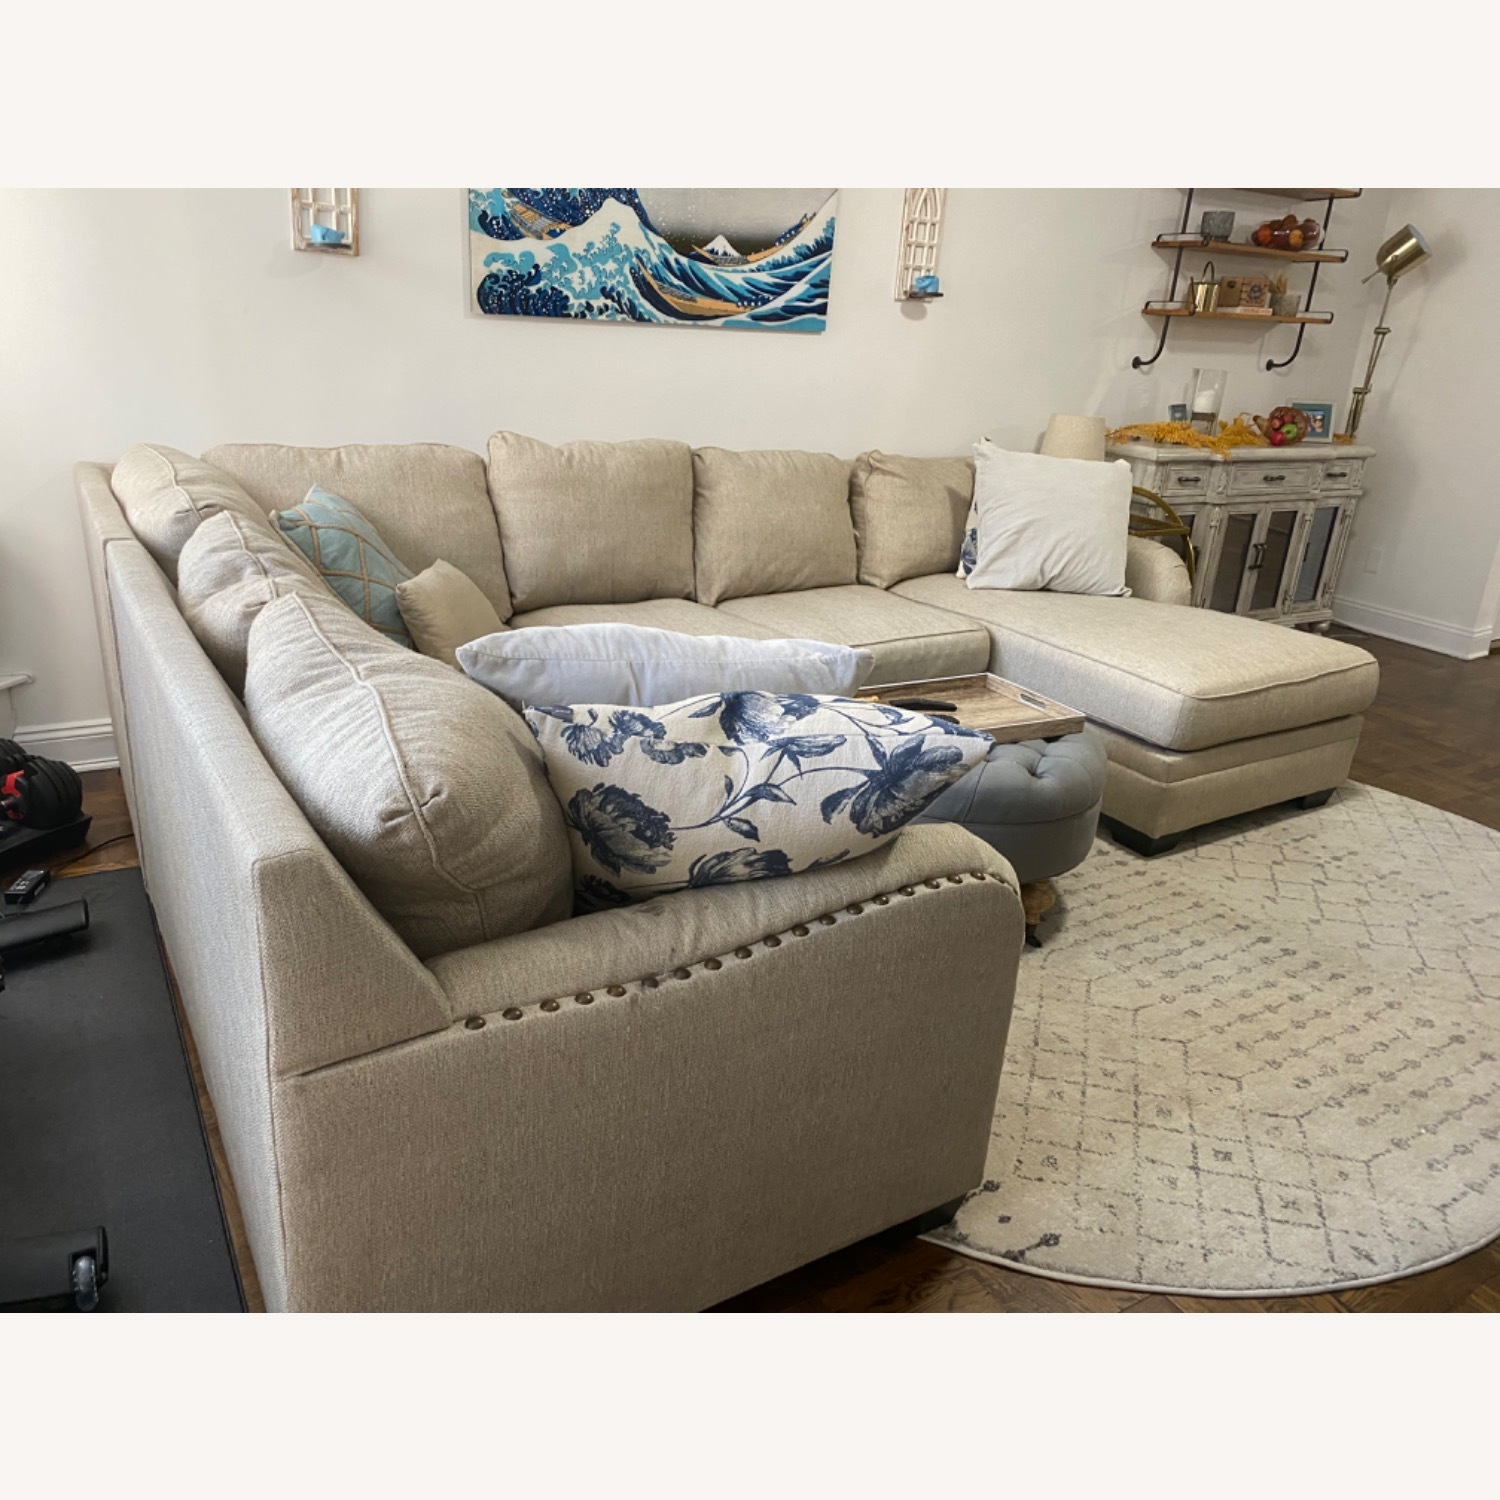 Ashley Home Luxora Beige 4-Piece Sectional Sofa - image-3